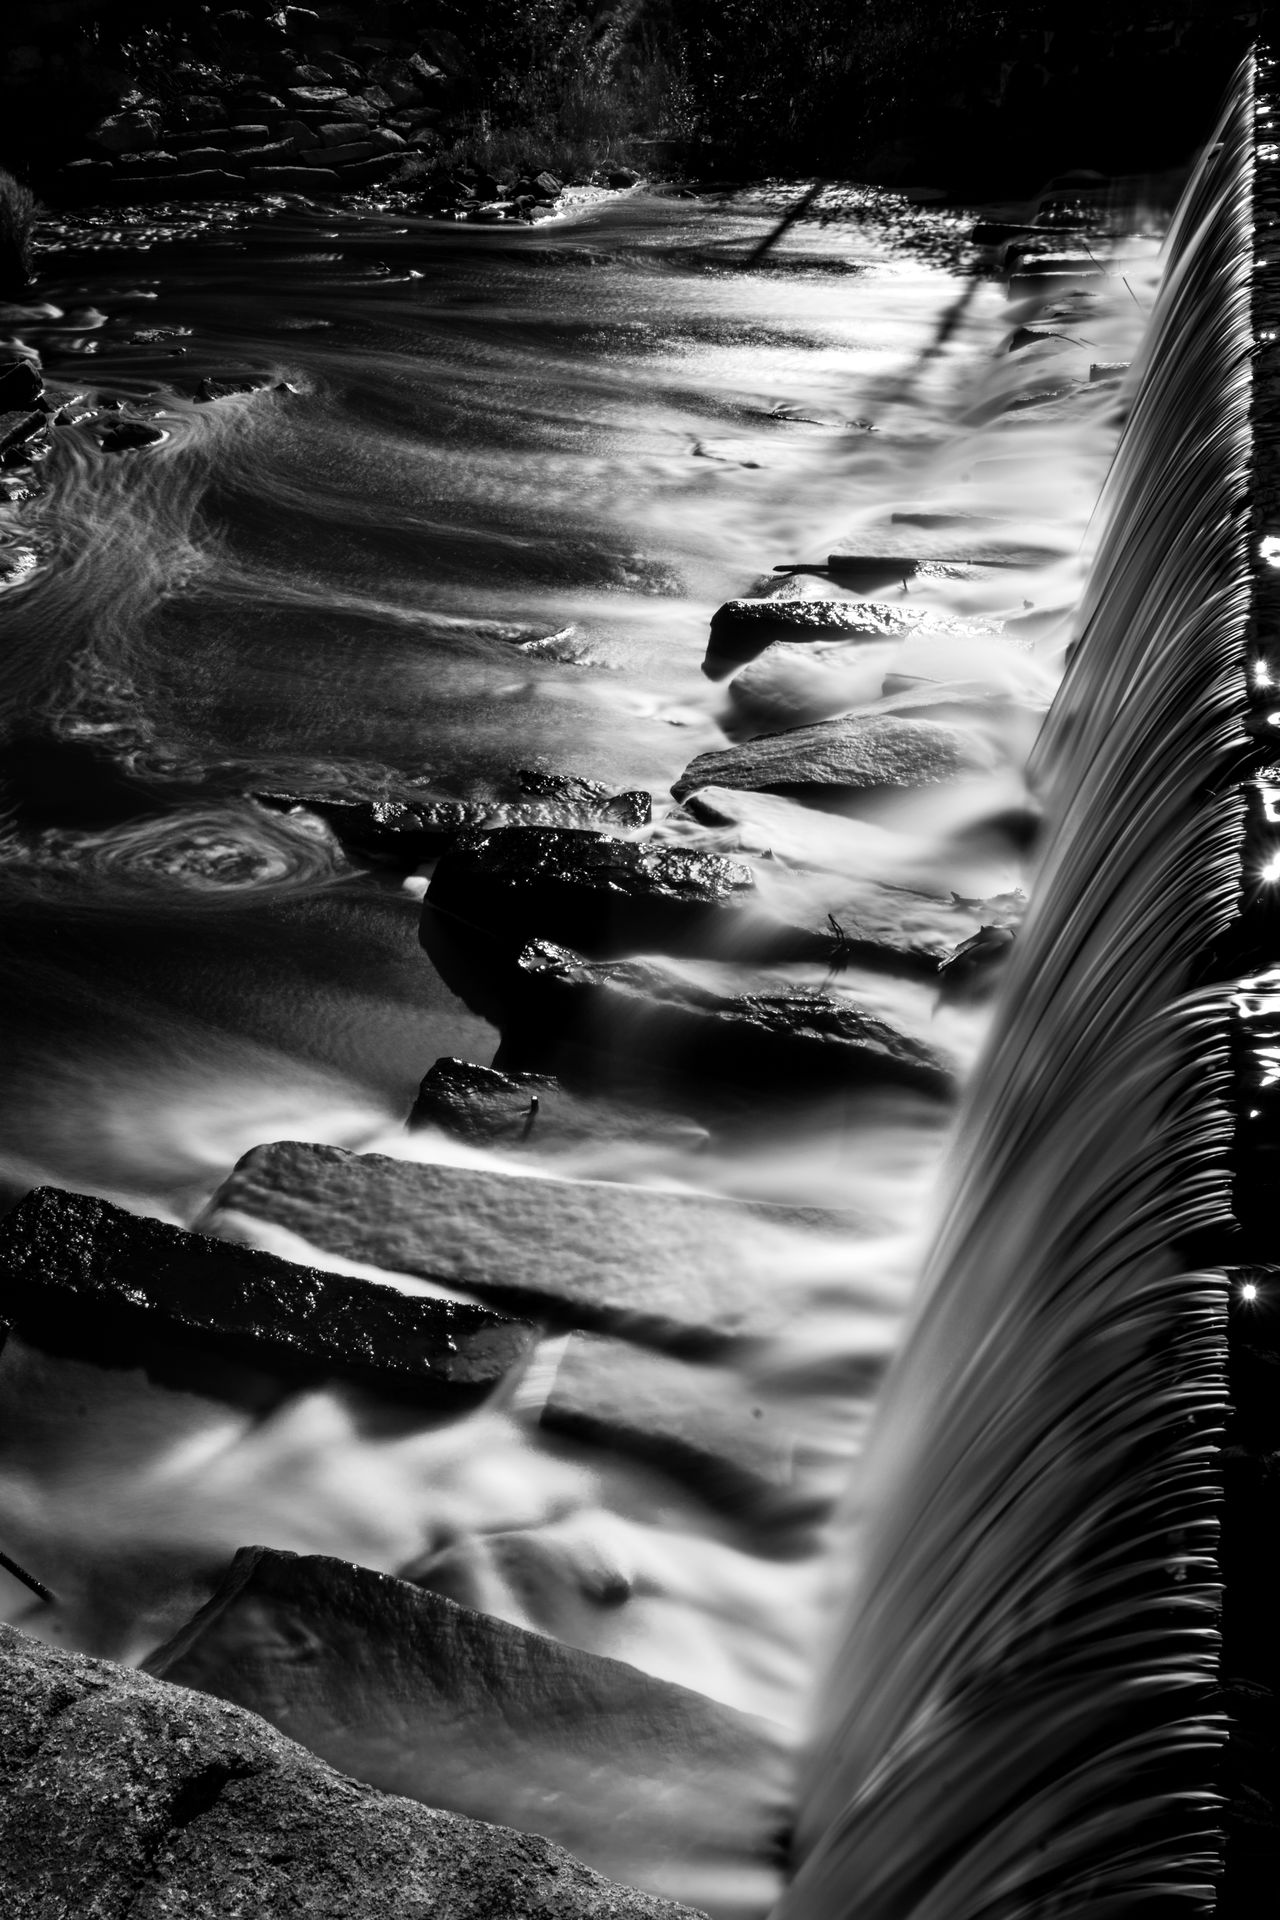 Water going over the dam at the Cooperage in Townsend, MA Animal Themes Beautiful Beauty In Nature Black And White Blackandwhite Close-up Contrast Dam Day Flowing Flowing Water Lake Landscape Light And Shadow Long Exposure Long Exposure Shot Nature No People Outdoors Perspective Rocks Rocks And Water Softness Water Water_collection